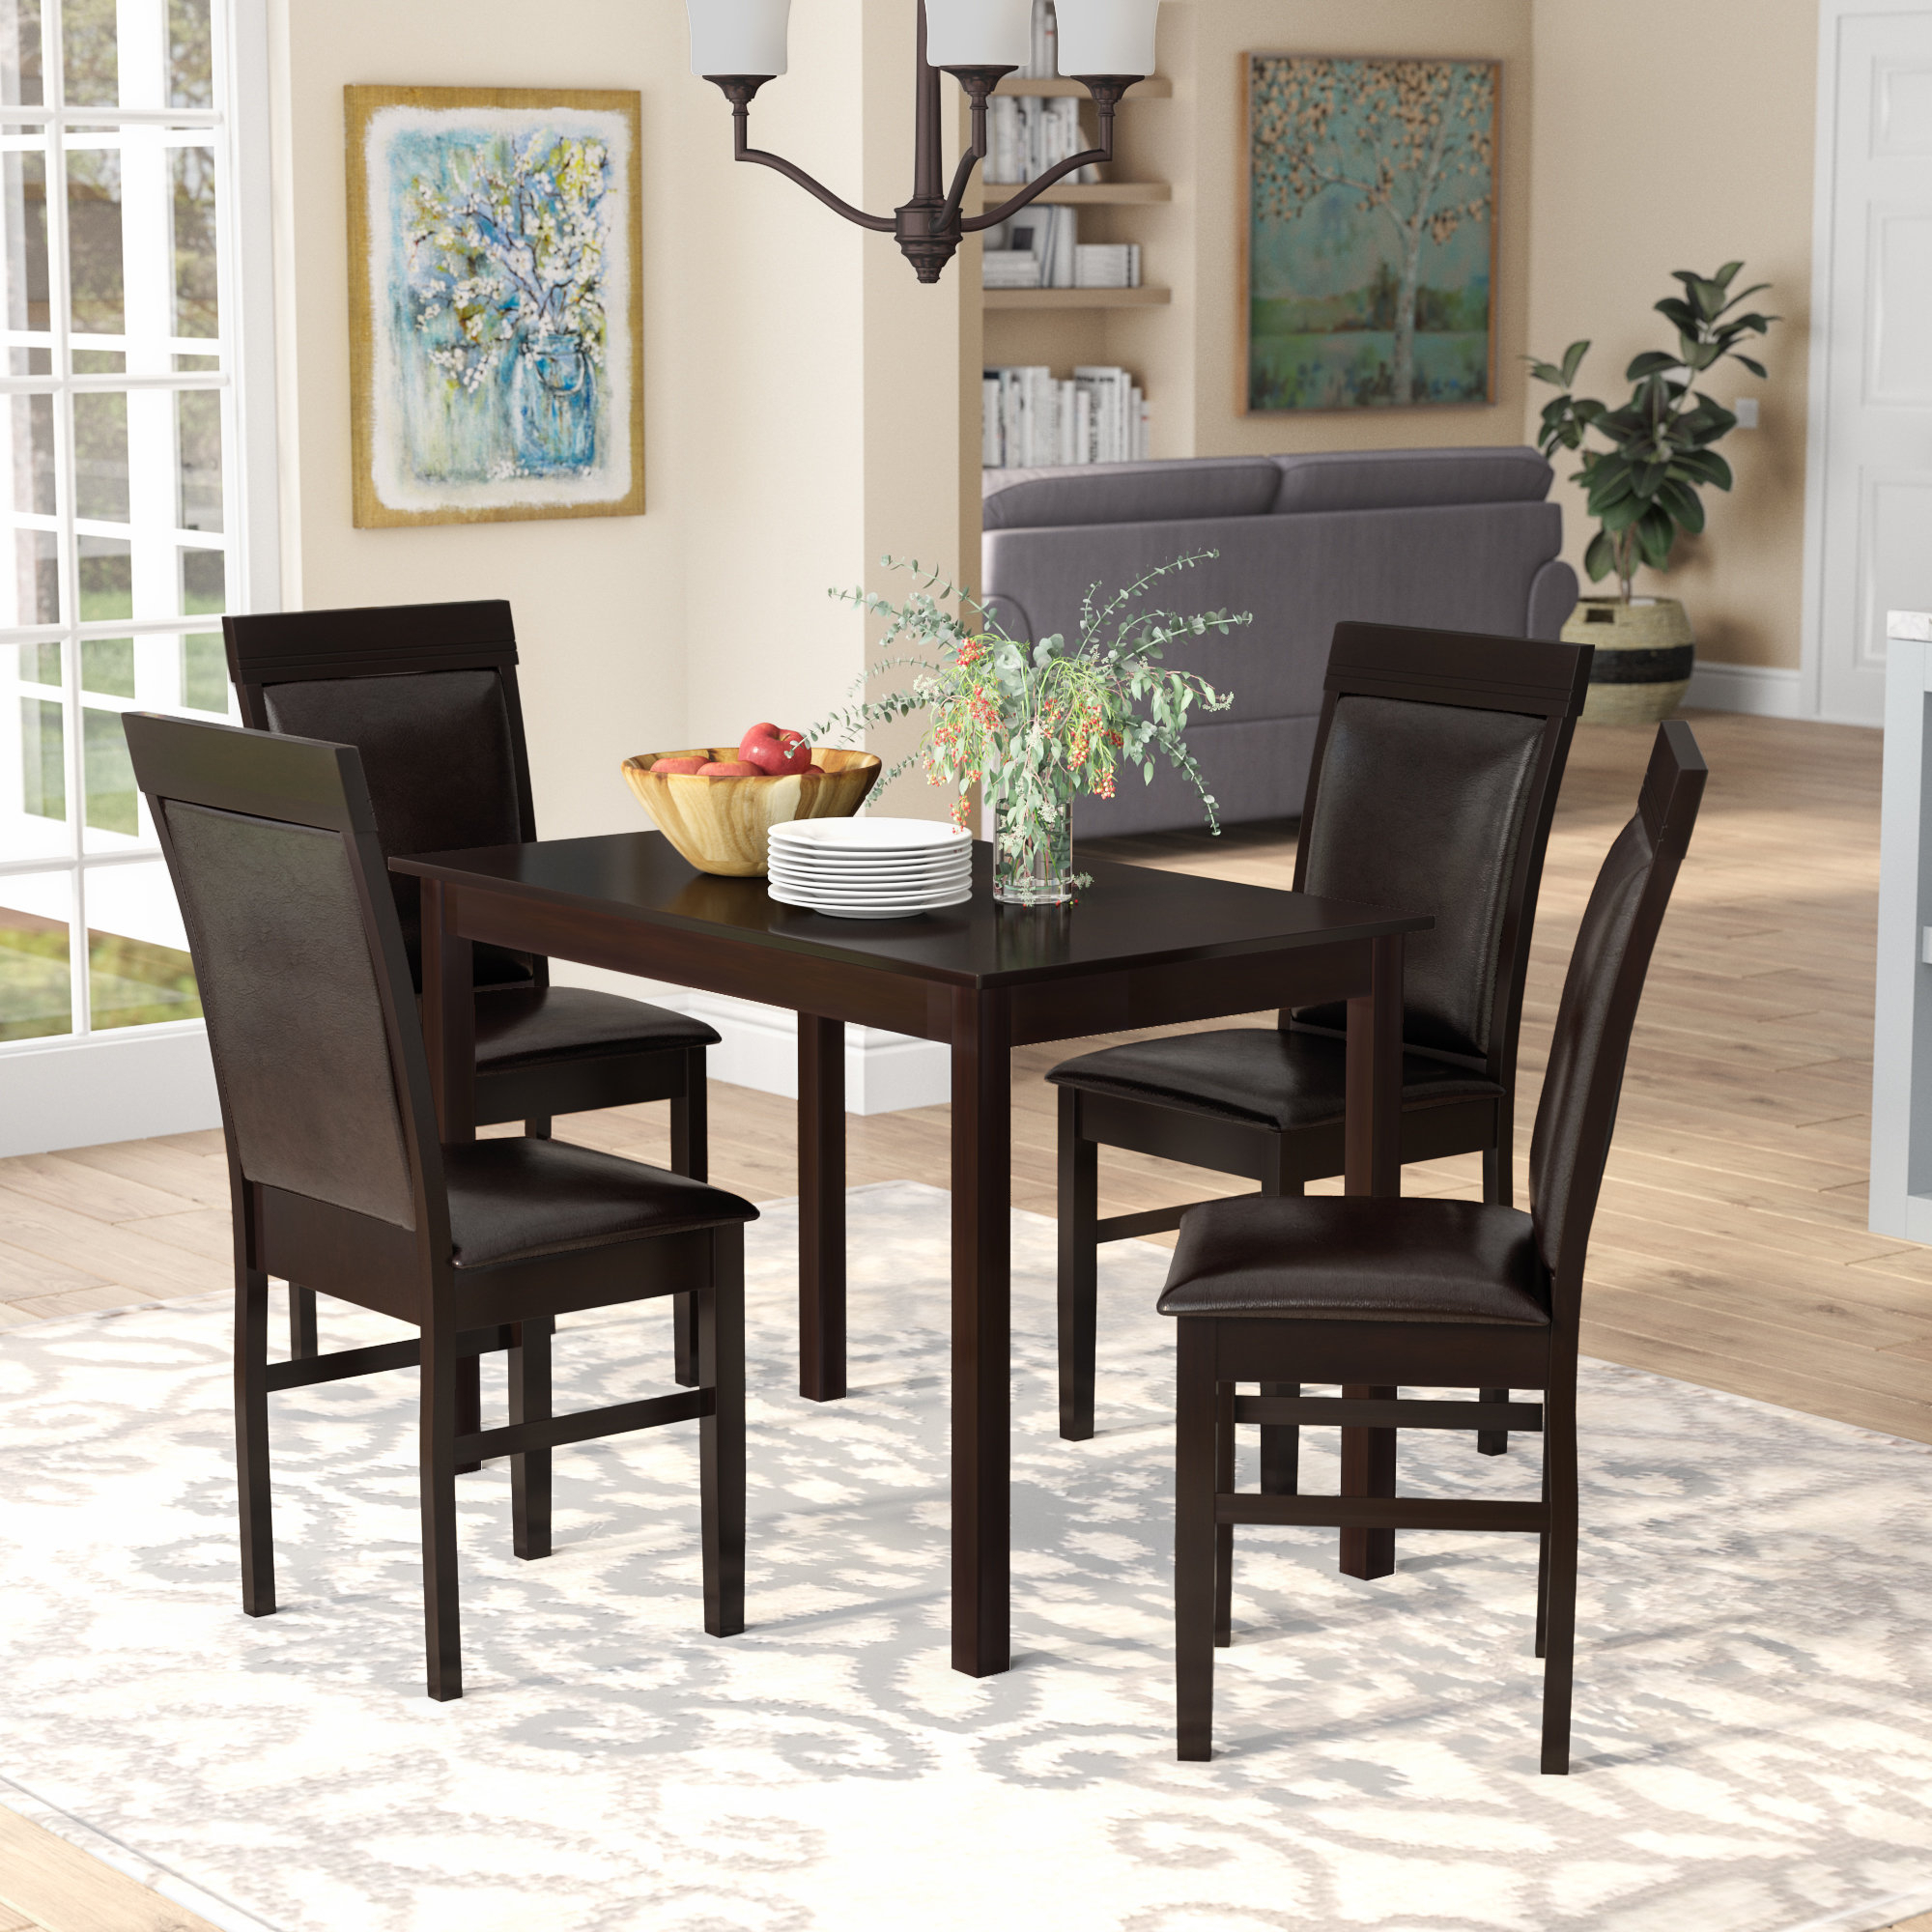 Red Barrel Studio Kisor Modern And Contemporary 5 Piece Breakfast regarding Well-known 5 Piece Breakfast Nook Dining Sets